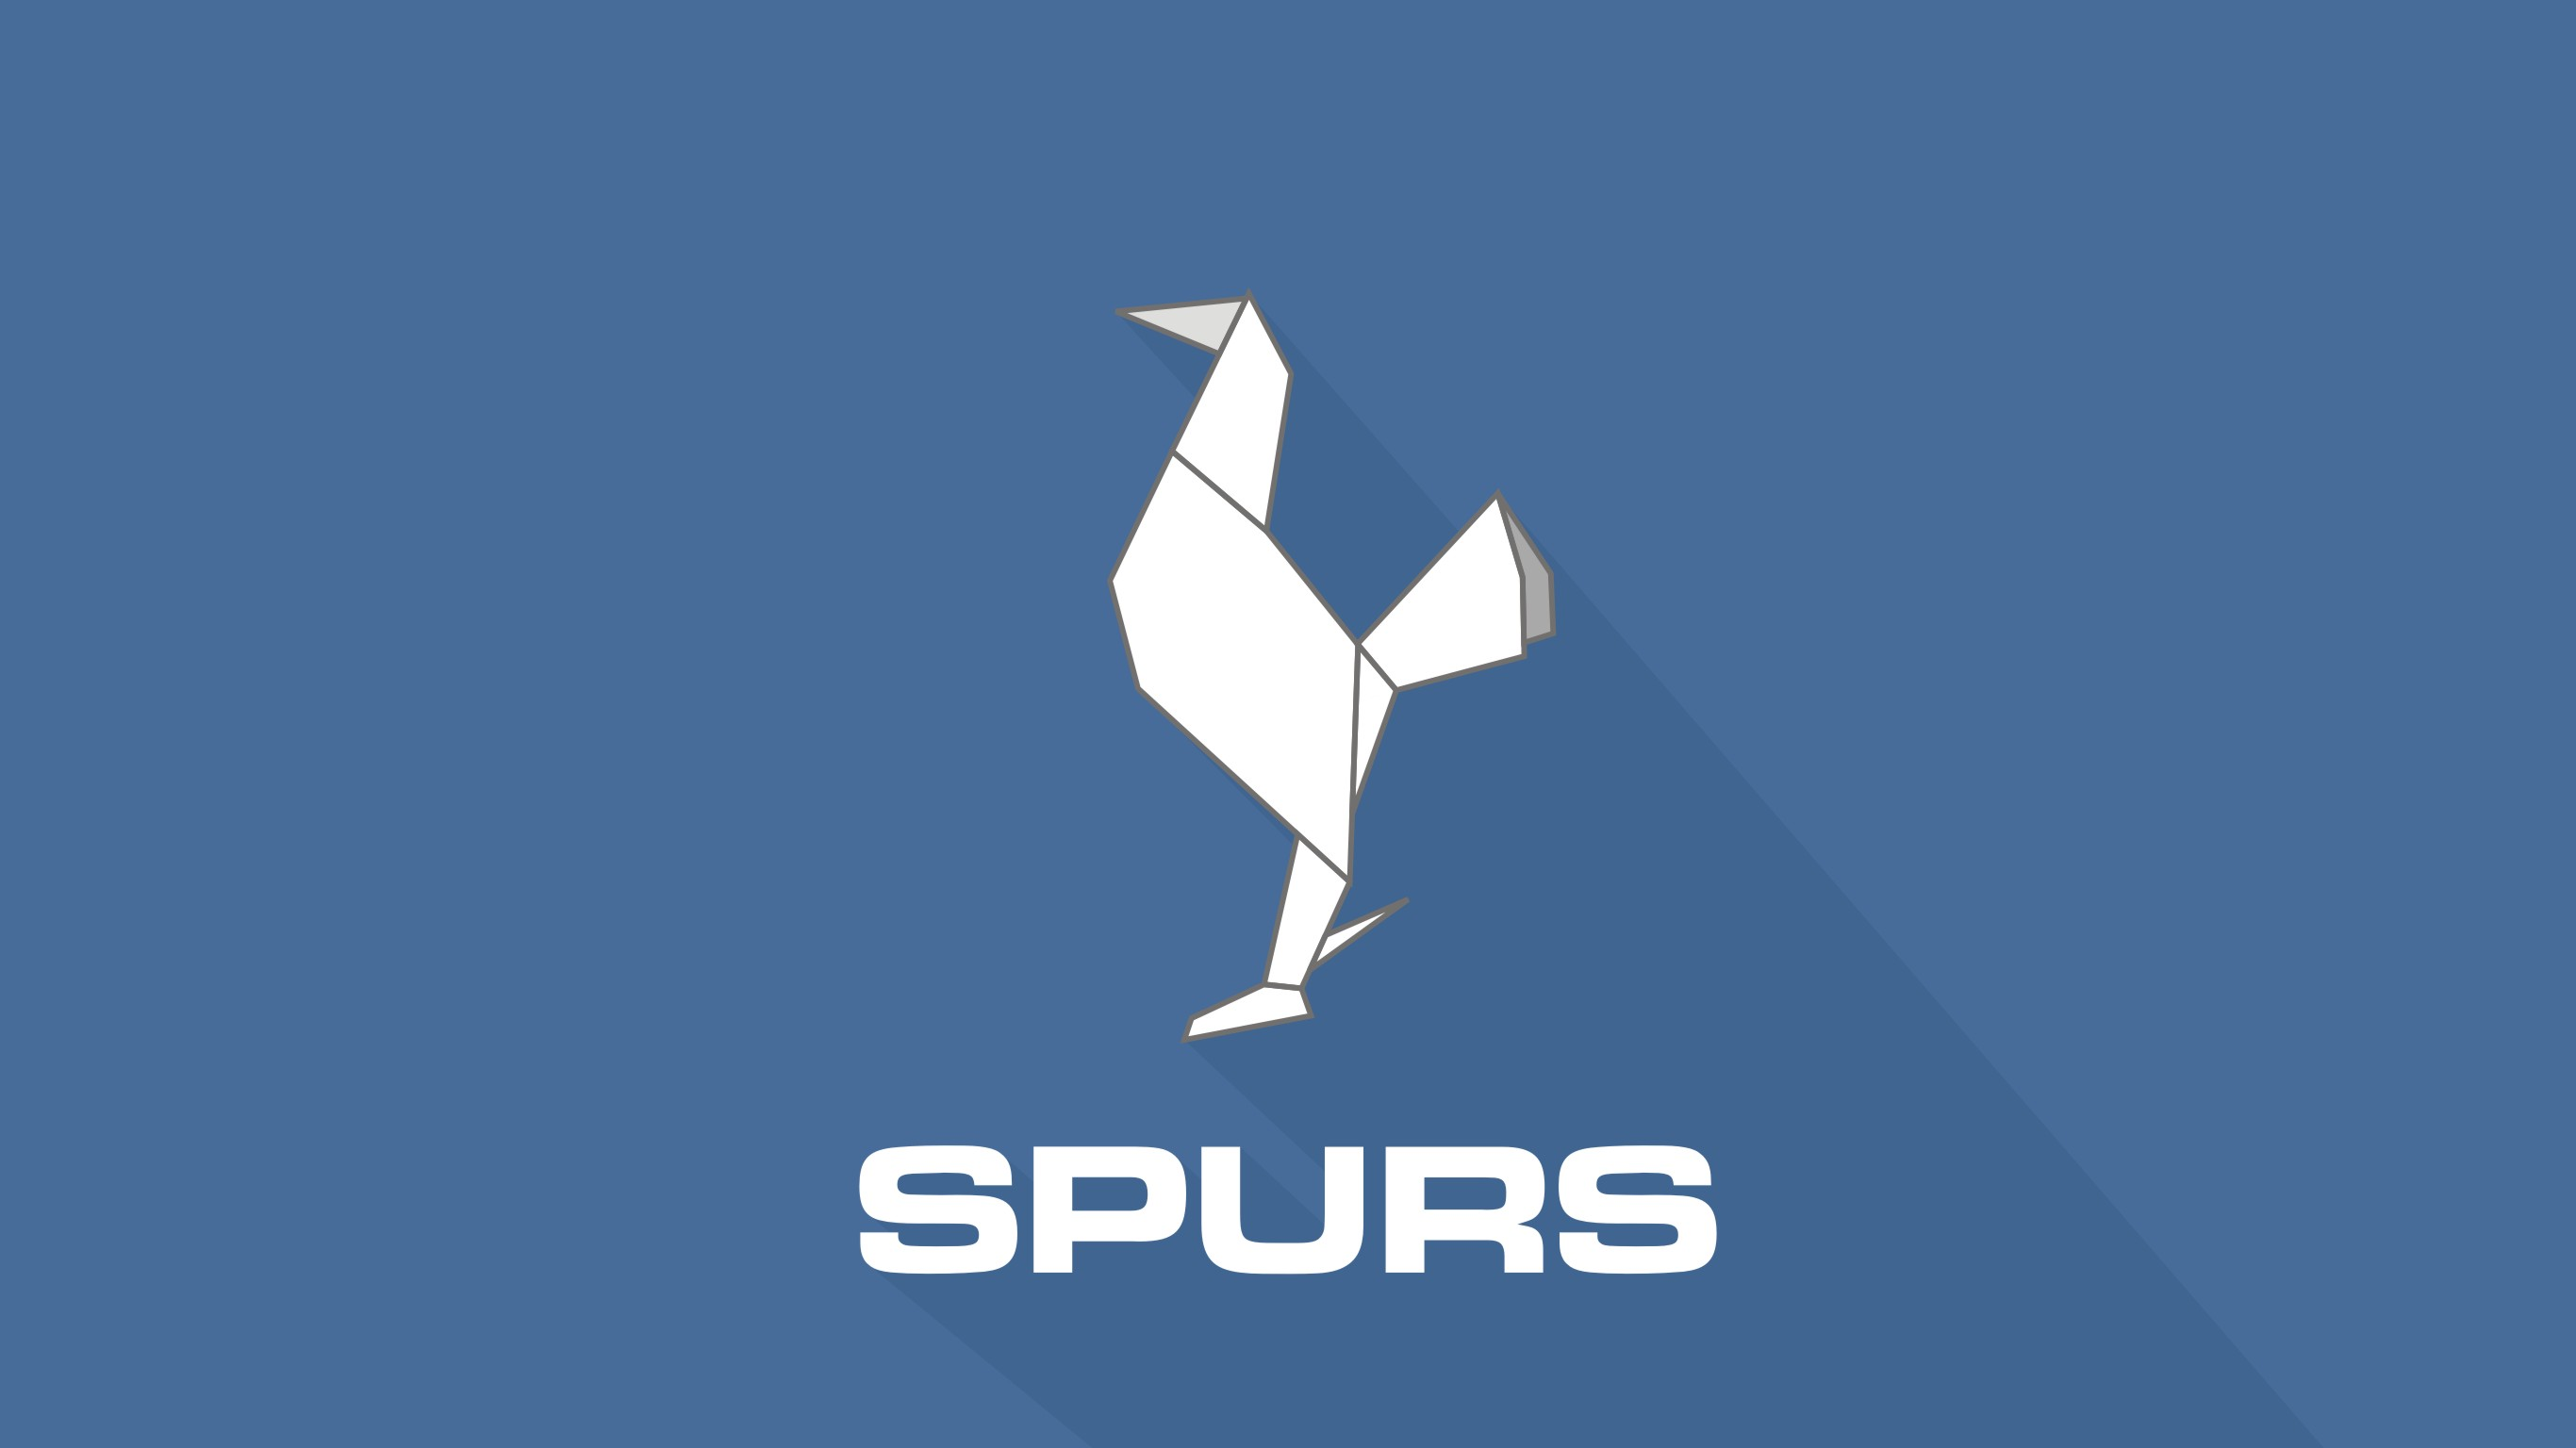 Origami Spurs Wallpaper by HamzahZein Origami Spurs Wallpaper by HamzahZein